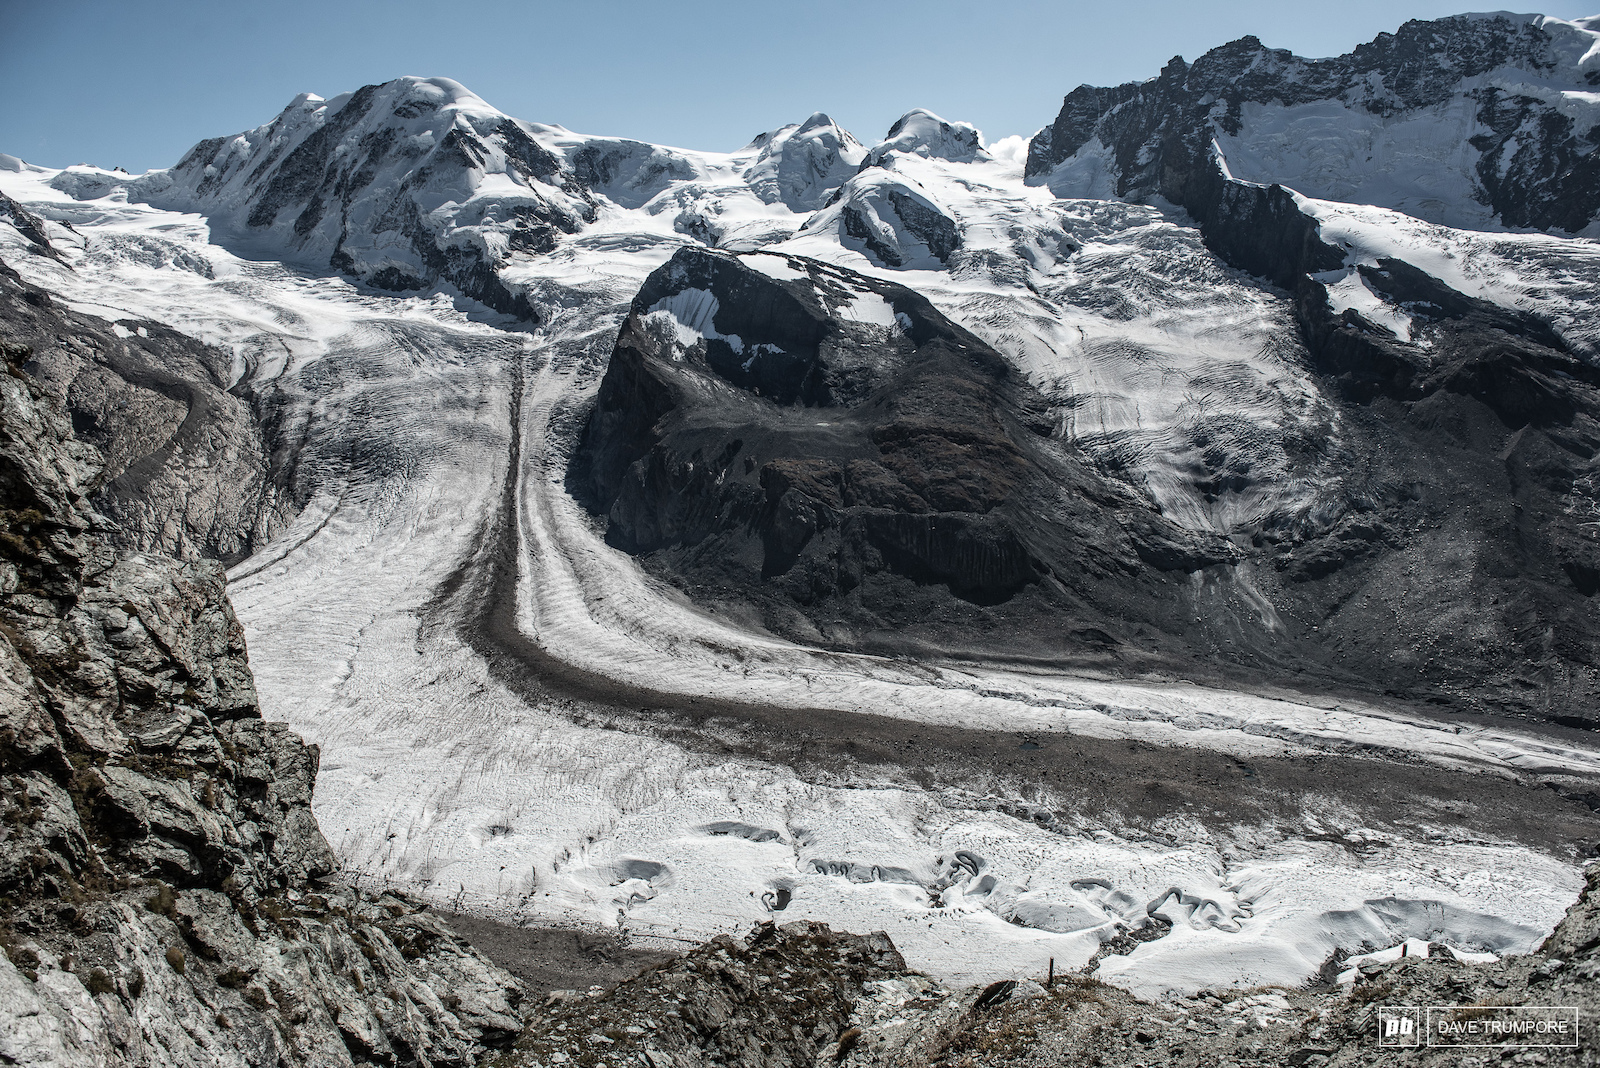 The rugged glacier that sits just above stage 4